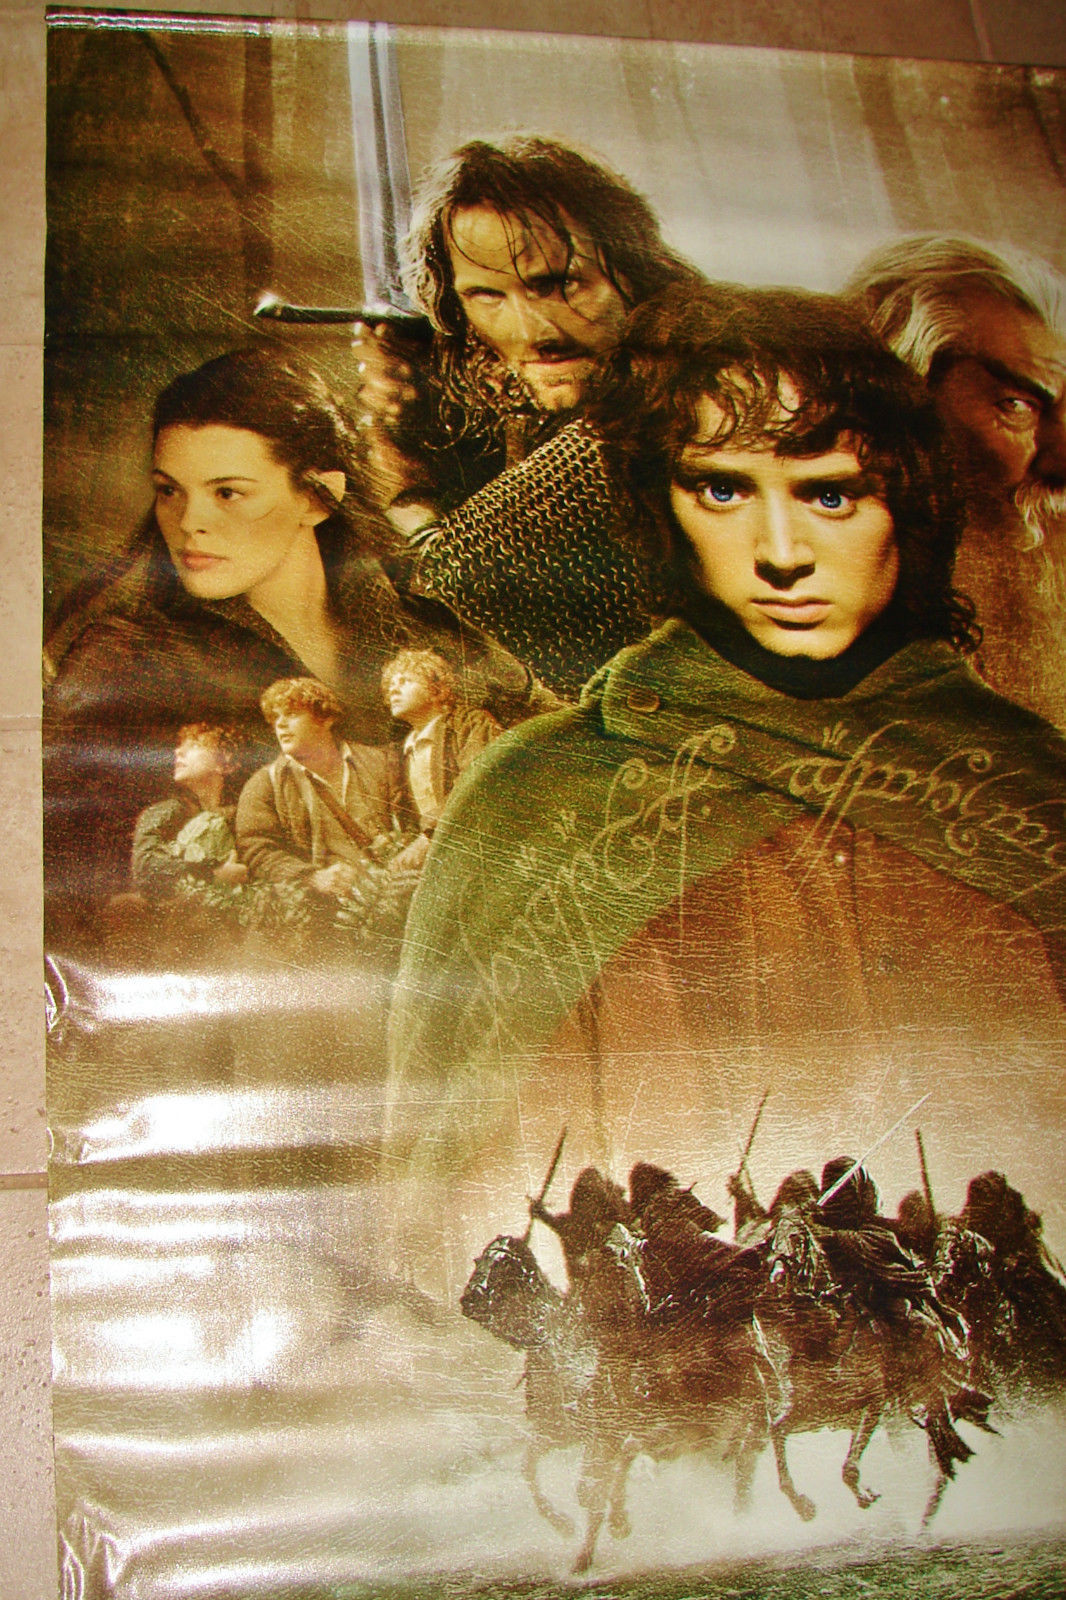 2001 LOTR FELLOWSHIP OF THE RING Vinyl Movie Theater Lobby Banner 48x70 (20)